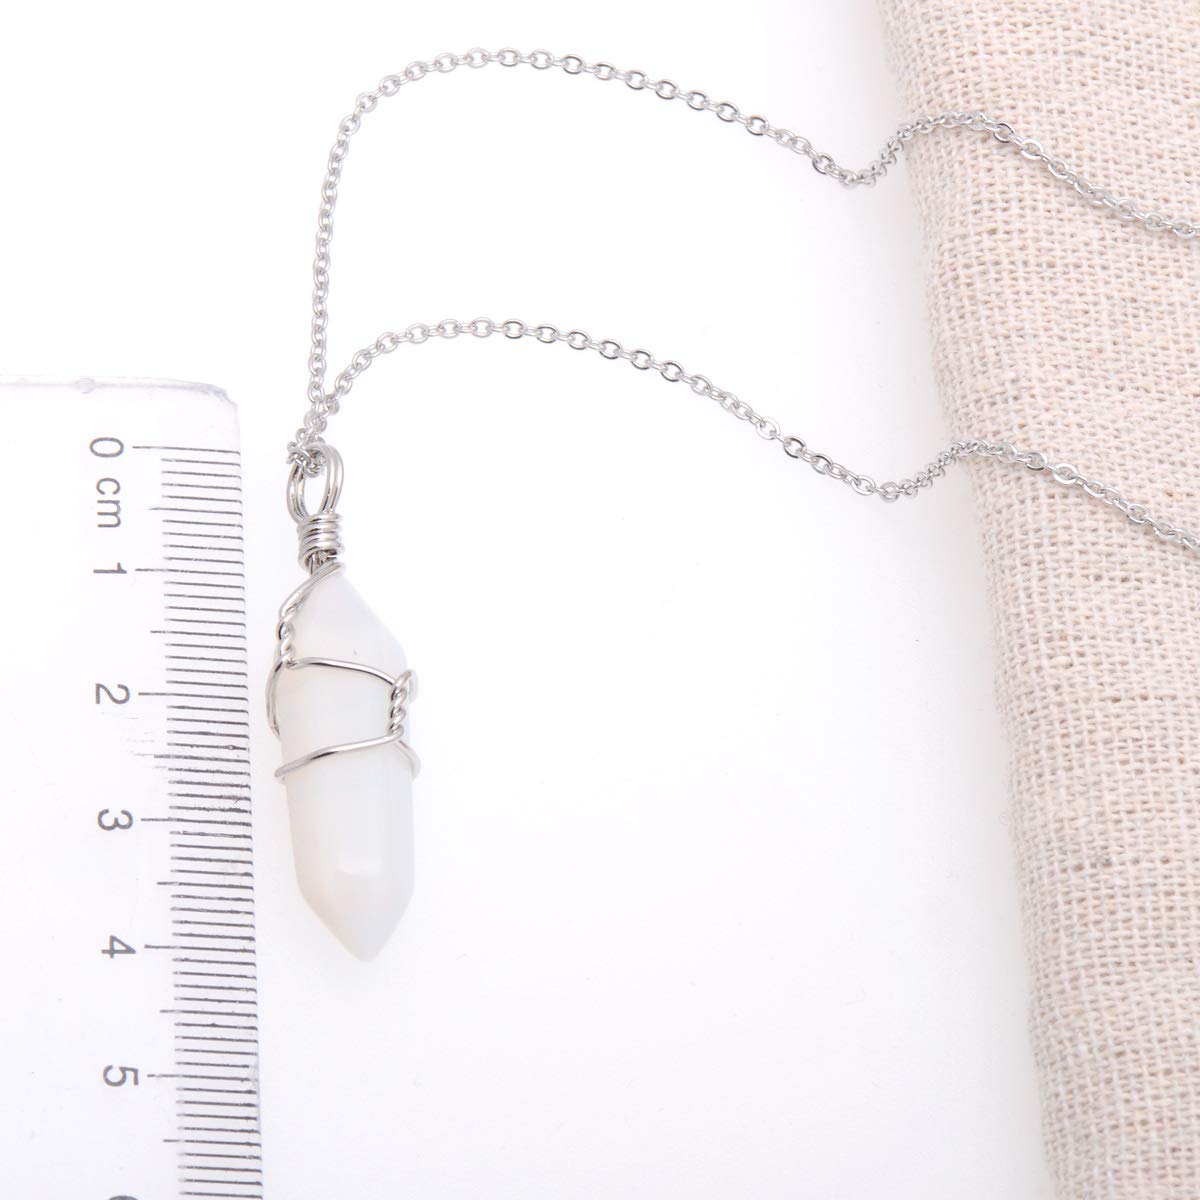 Hand Wired White Opal Imitation Gemstone Healing Point Chakra Pendant Necklace 18 Inches